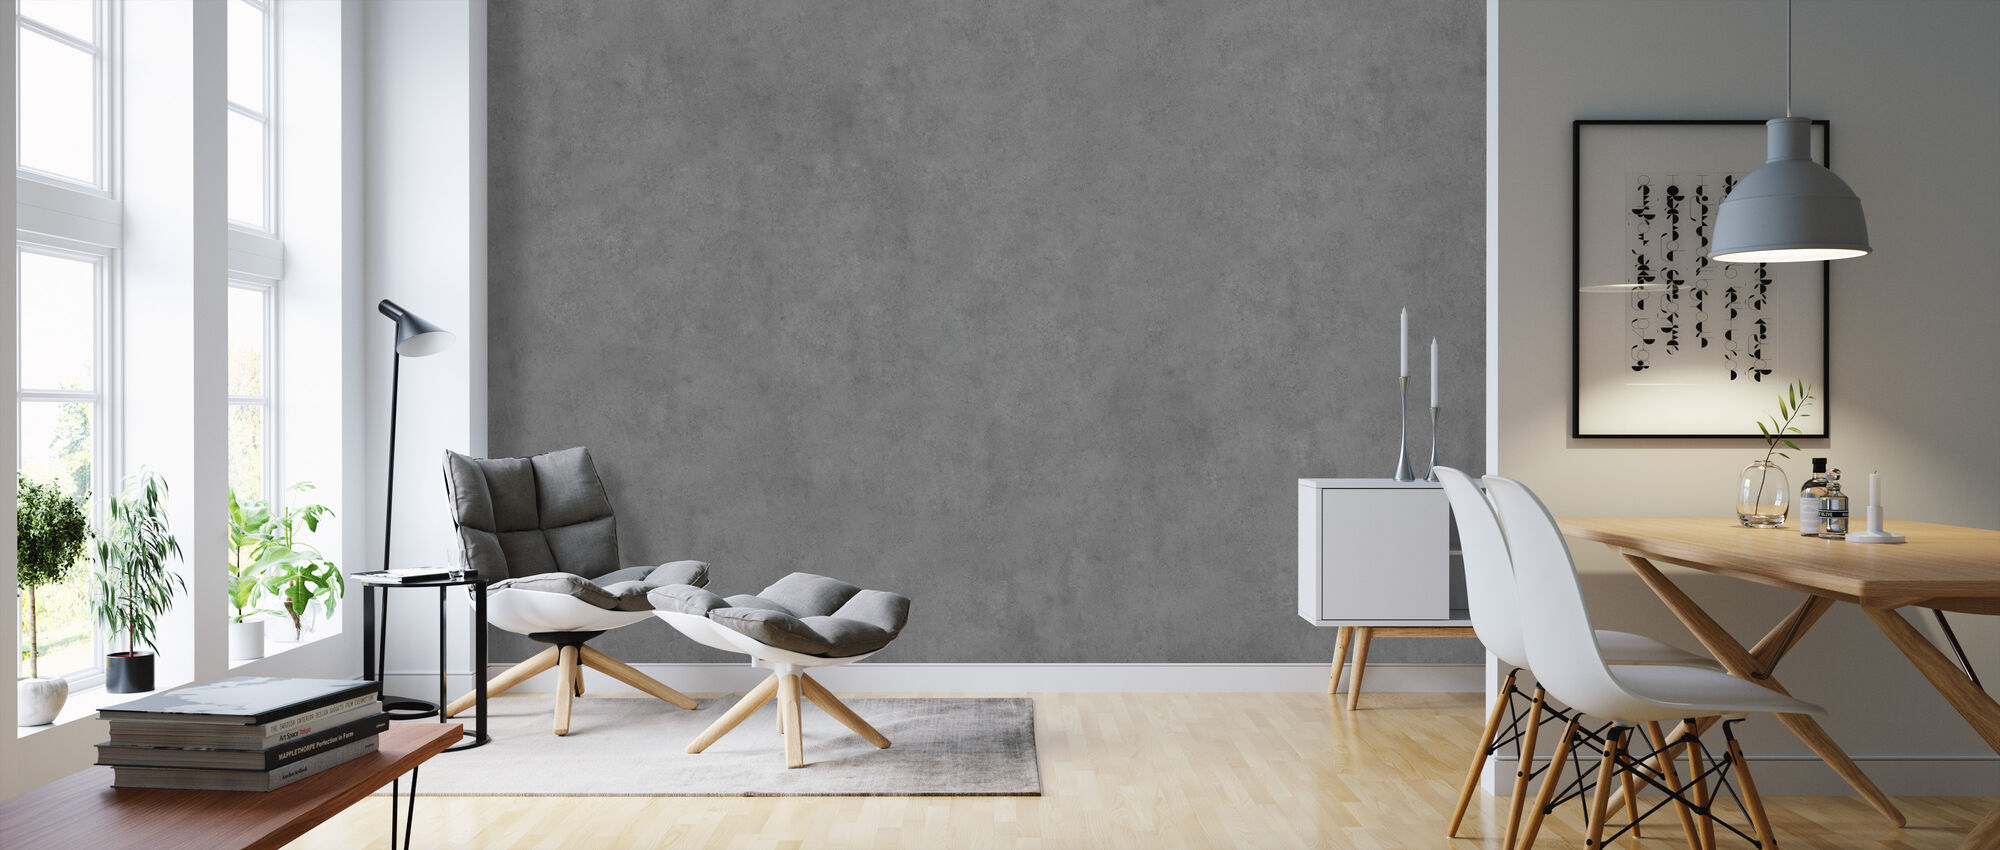 Smooth Grey Concrete Wall - Wallpaper - Living Room